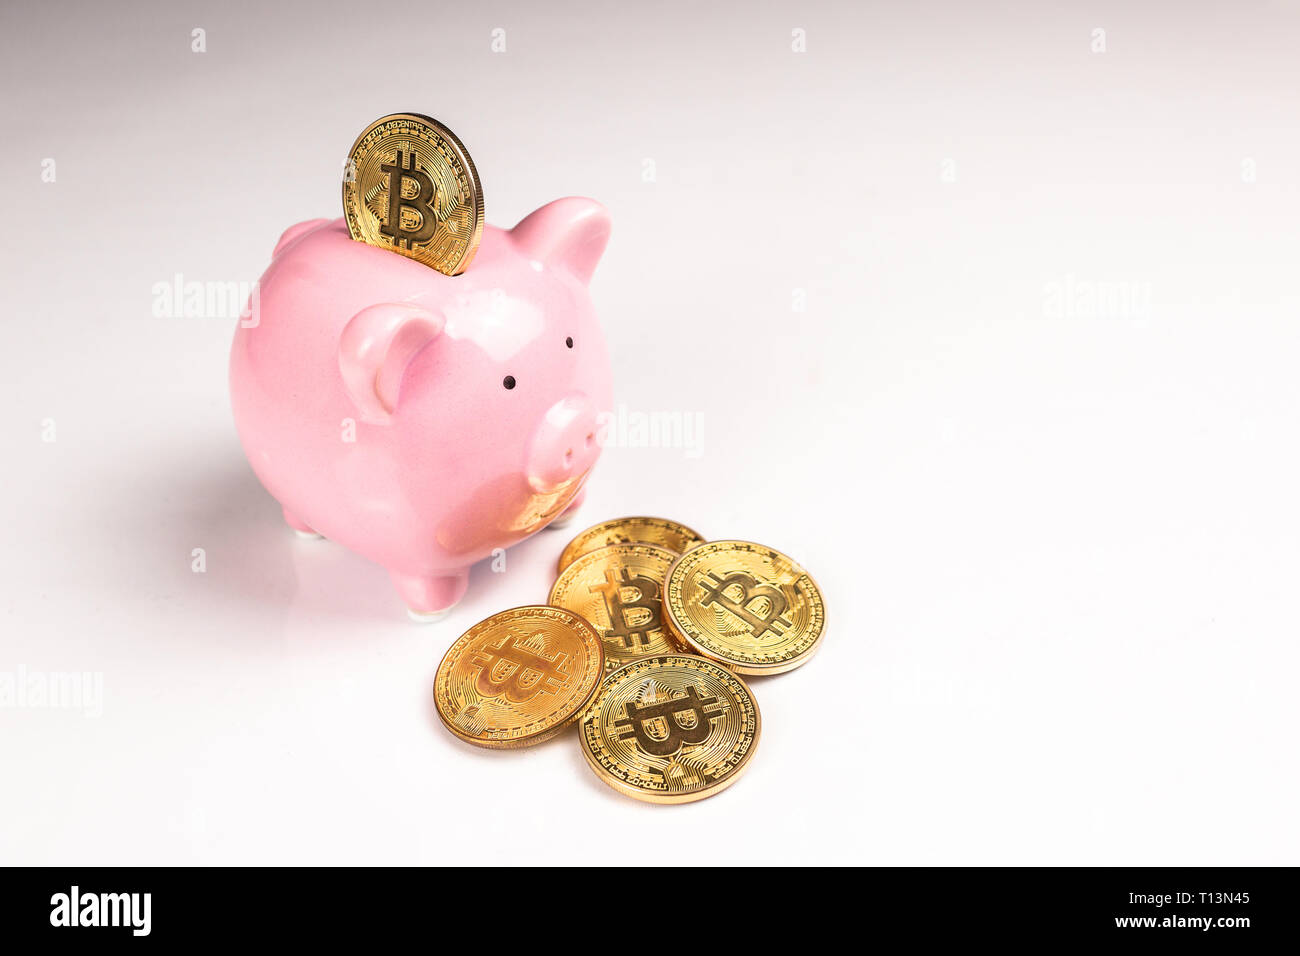 Putting bitcoin to piggy bank, new virtual electronic and digital money, hodl investment concept - Stock Image